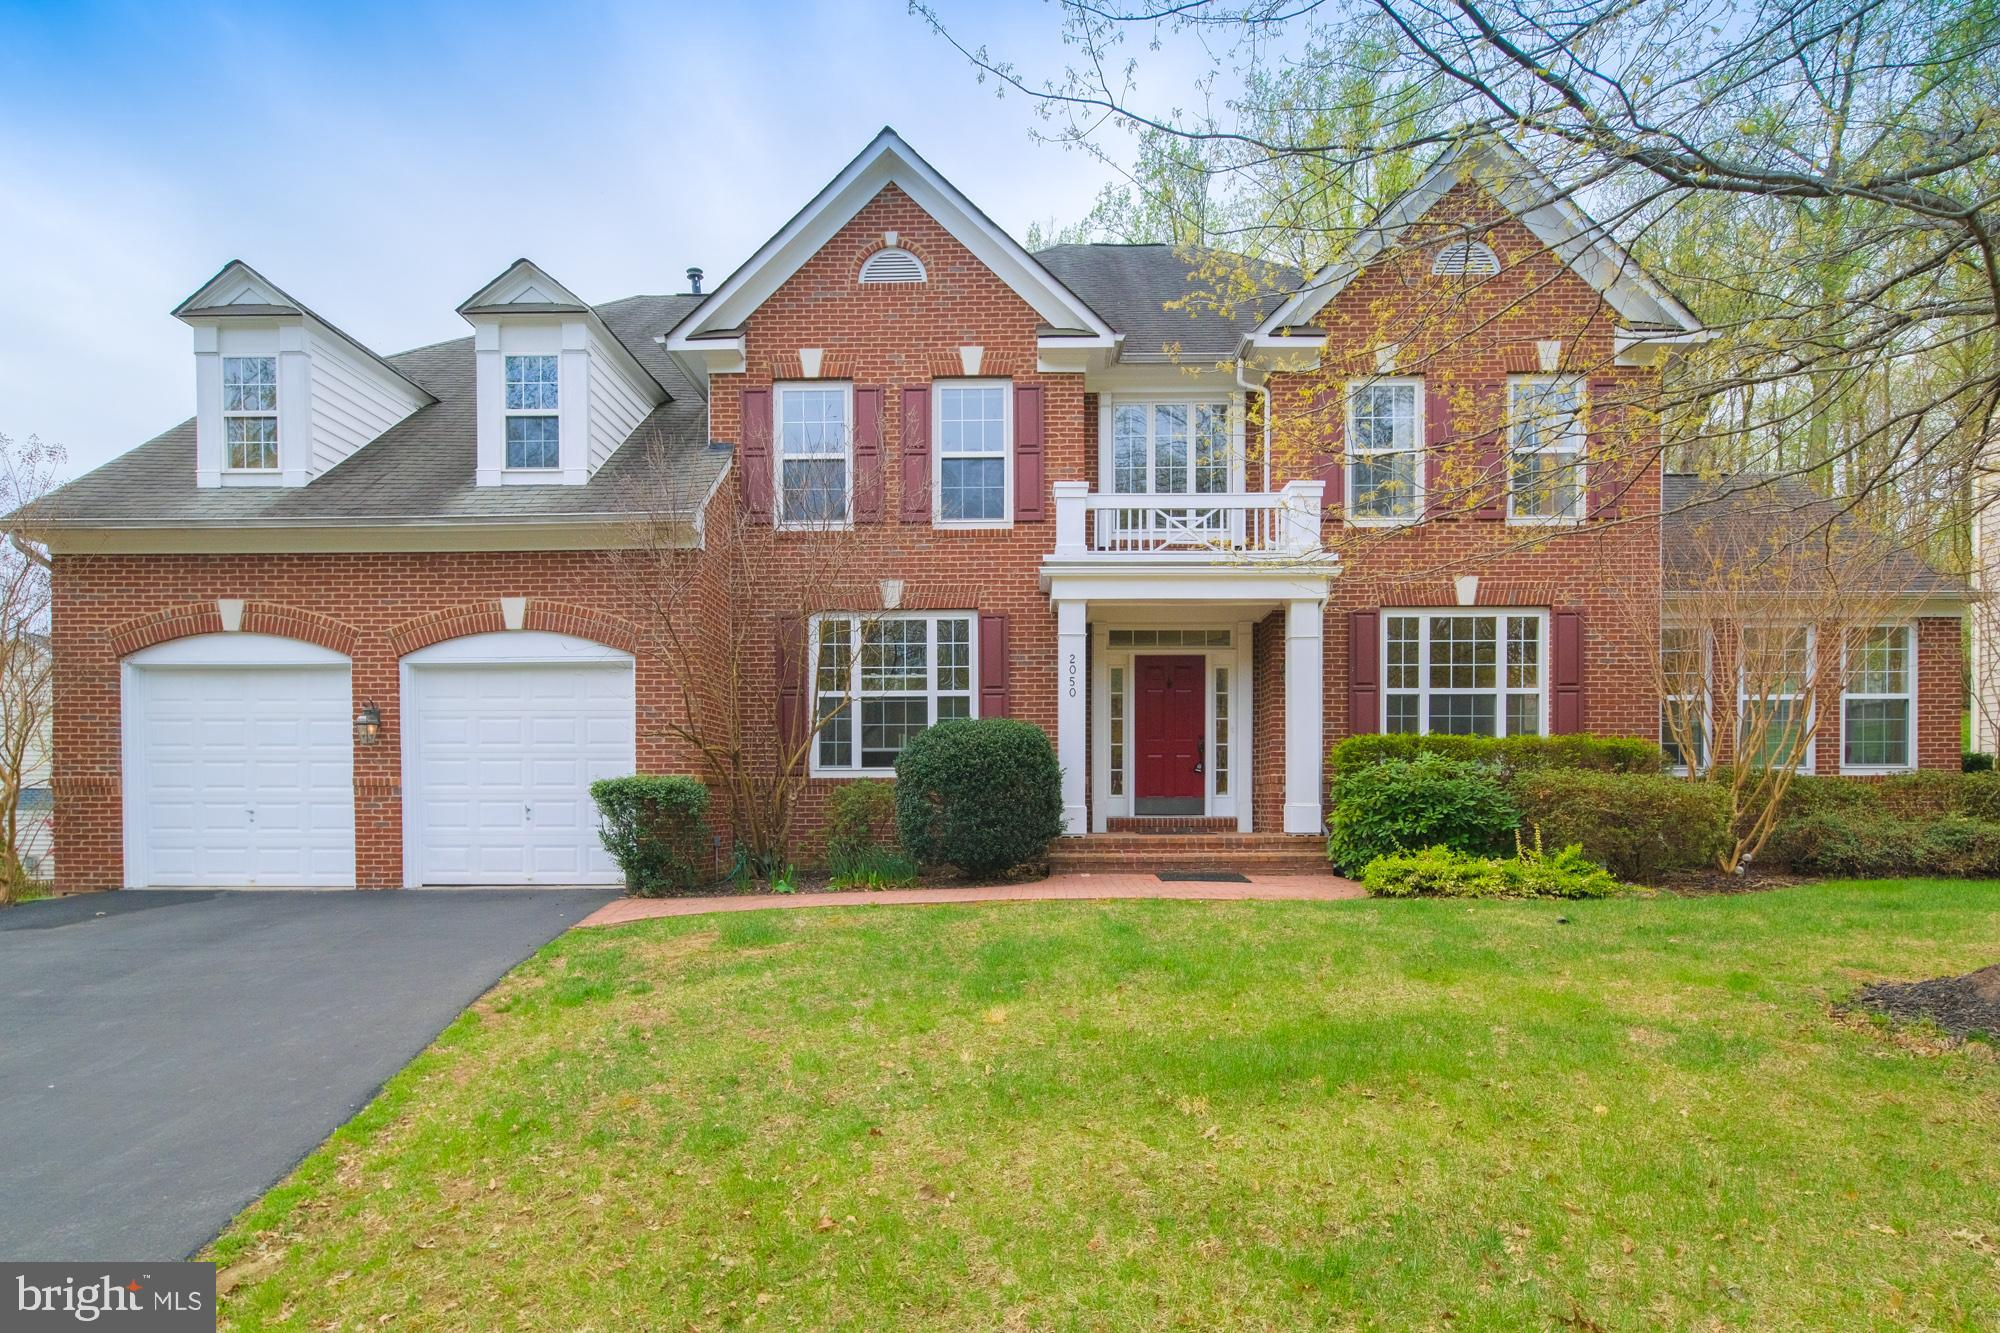 Beautiful brick front 4BR/4.5BA home in Powells Landing. Award winning Newport model over 5400 sq ft, $80k in upgrds. Hardwood floors in  Living Room, Dining Room, Kitchen and Study. Large Kitchen offers Granite Counters, Double Ovens, Built-in Microwave, Wine Rack, Breakfast Bar. Sunroom with Ceramic Tile. Sunken FR with Gas Fireplace & window wall. Huge MBR/Sitting Room with Gas Fireplace, Soaking Tub and  Walk-in Closet. Finished Walk-out Basement with a large Bonus Room that can be used as a Exercise Room, Theater Room or a Bedroom.